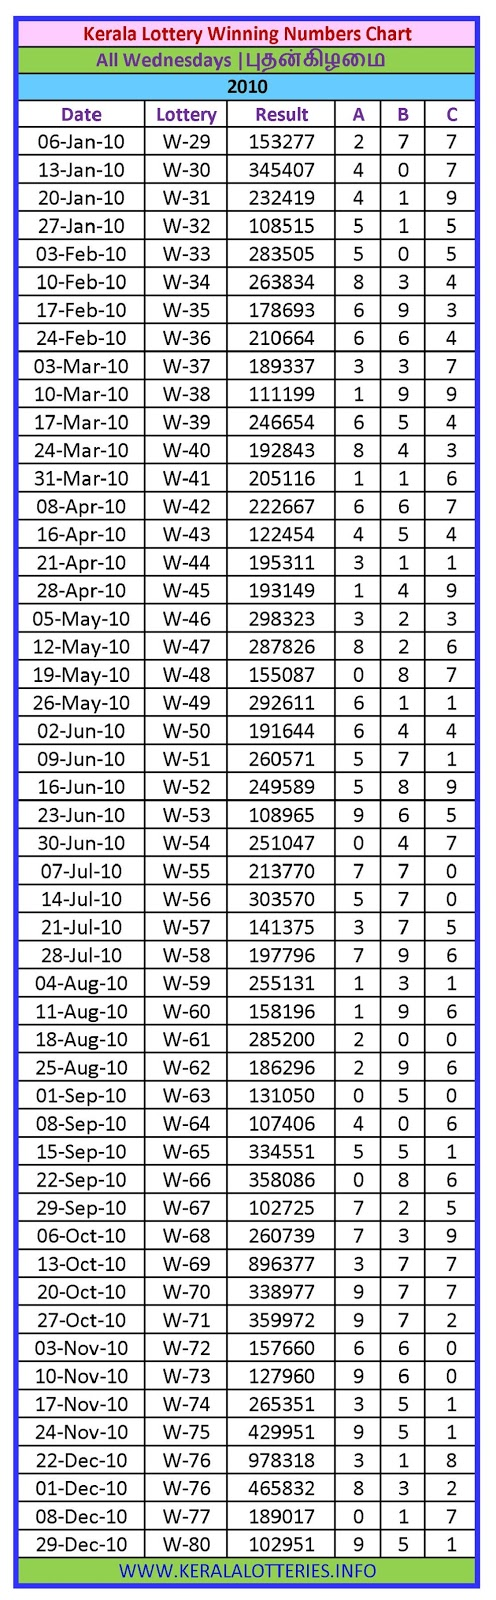 Kerala Lottery Winning Number Chart Wednesday -2010